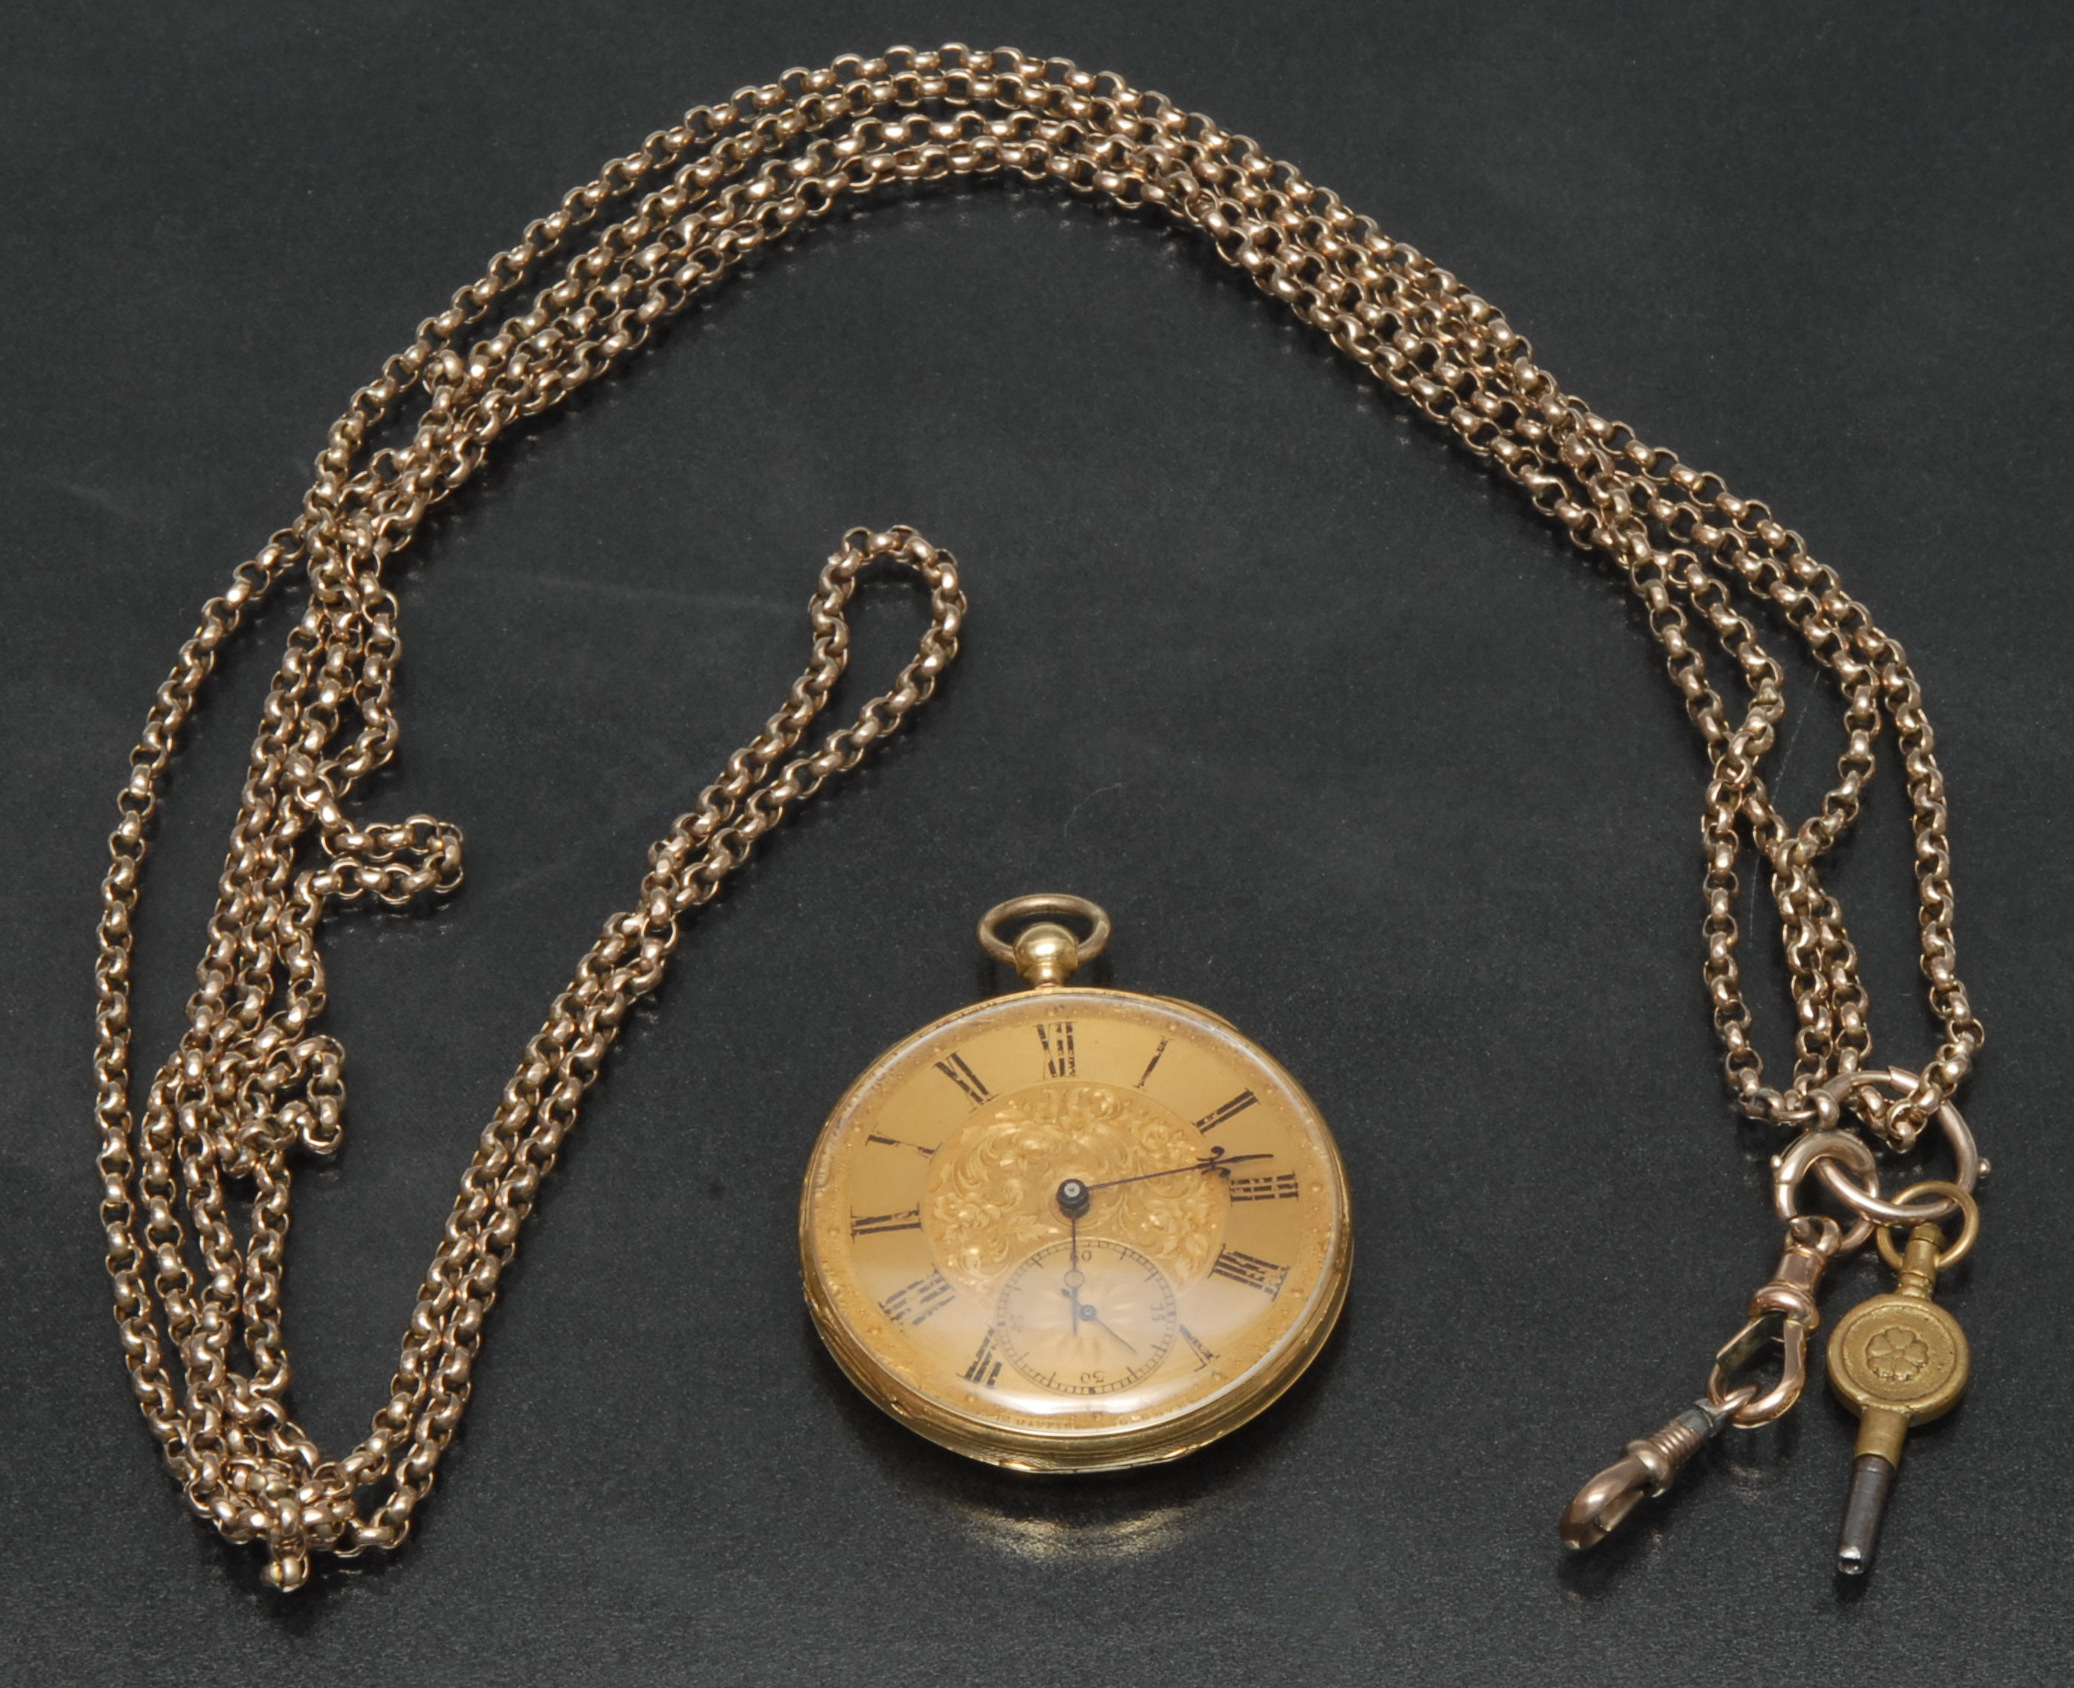 Lot 3006 - A 19th century continental yellow metal open face pocket watch, E Raffin Geneve,